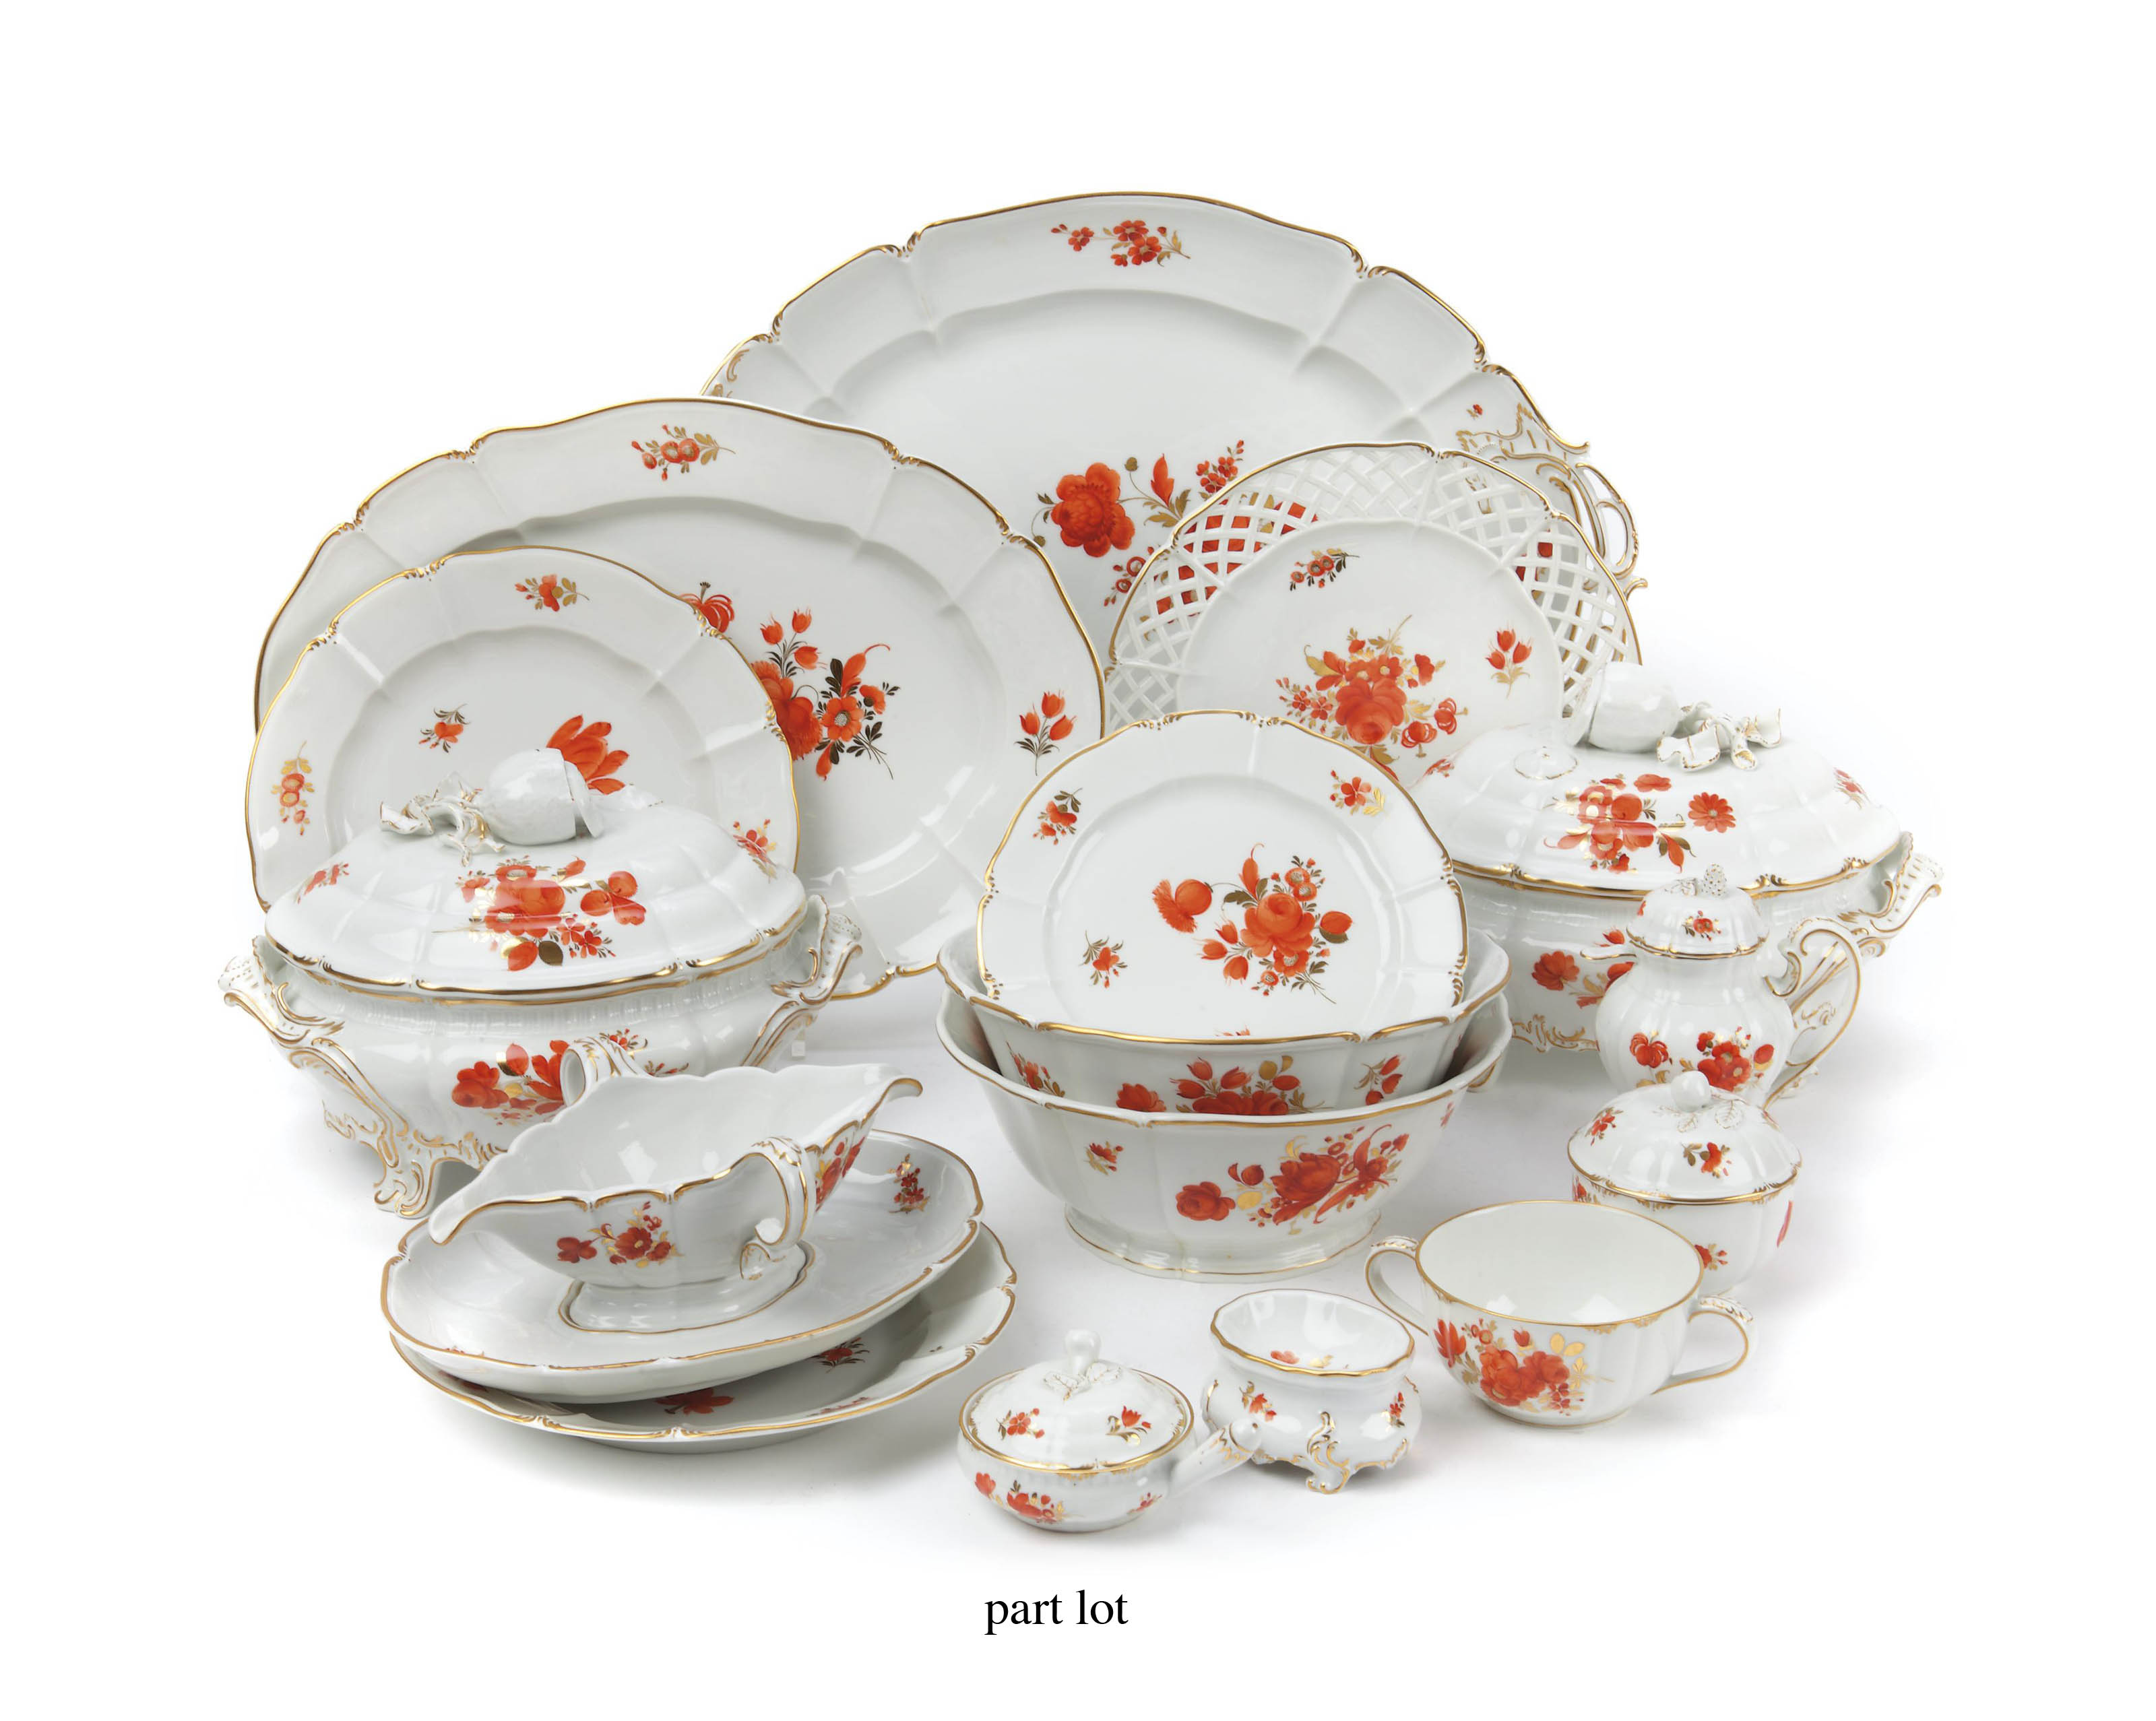 A Nymphenburg floral dinner service